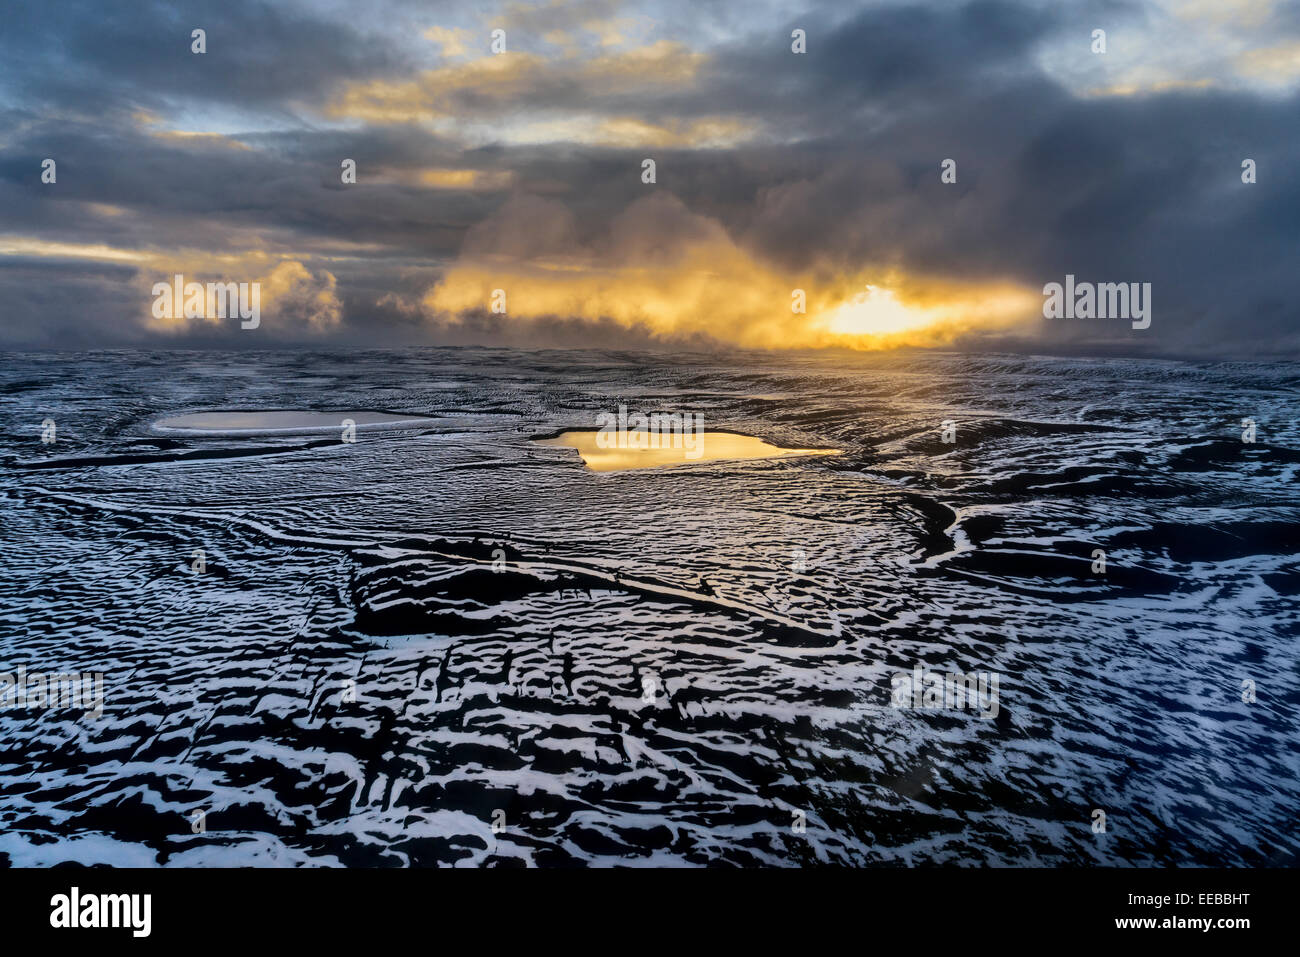 Snow covered lava. Volcano Eruption at the Holuhraun Fissure near the Bardarbunga Volcano, Iceland - Stock Image